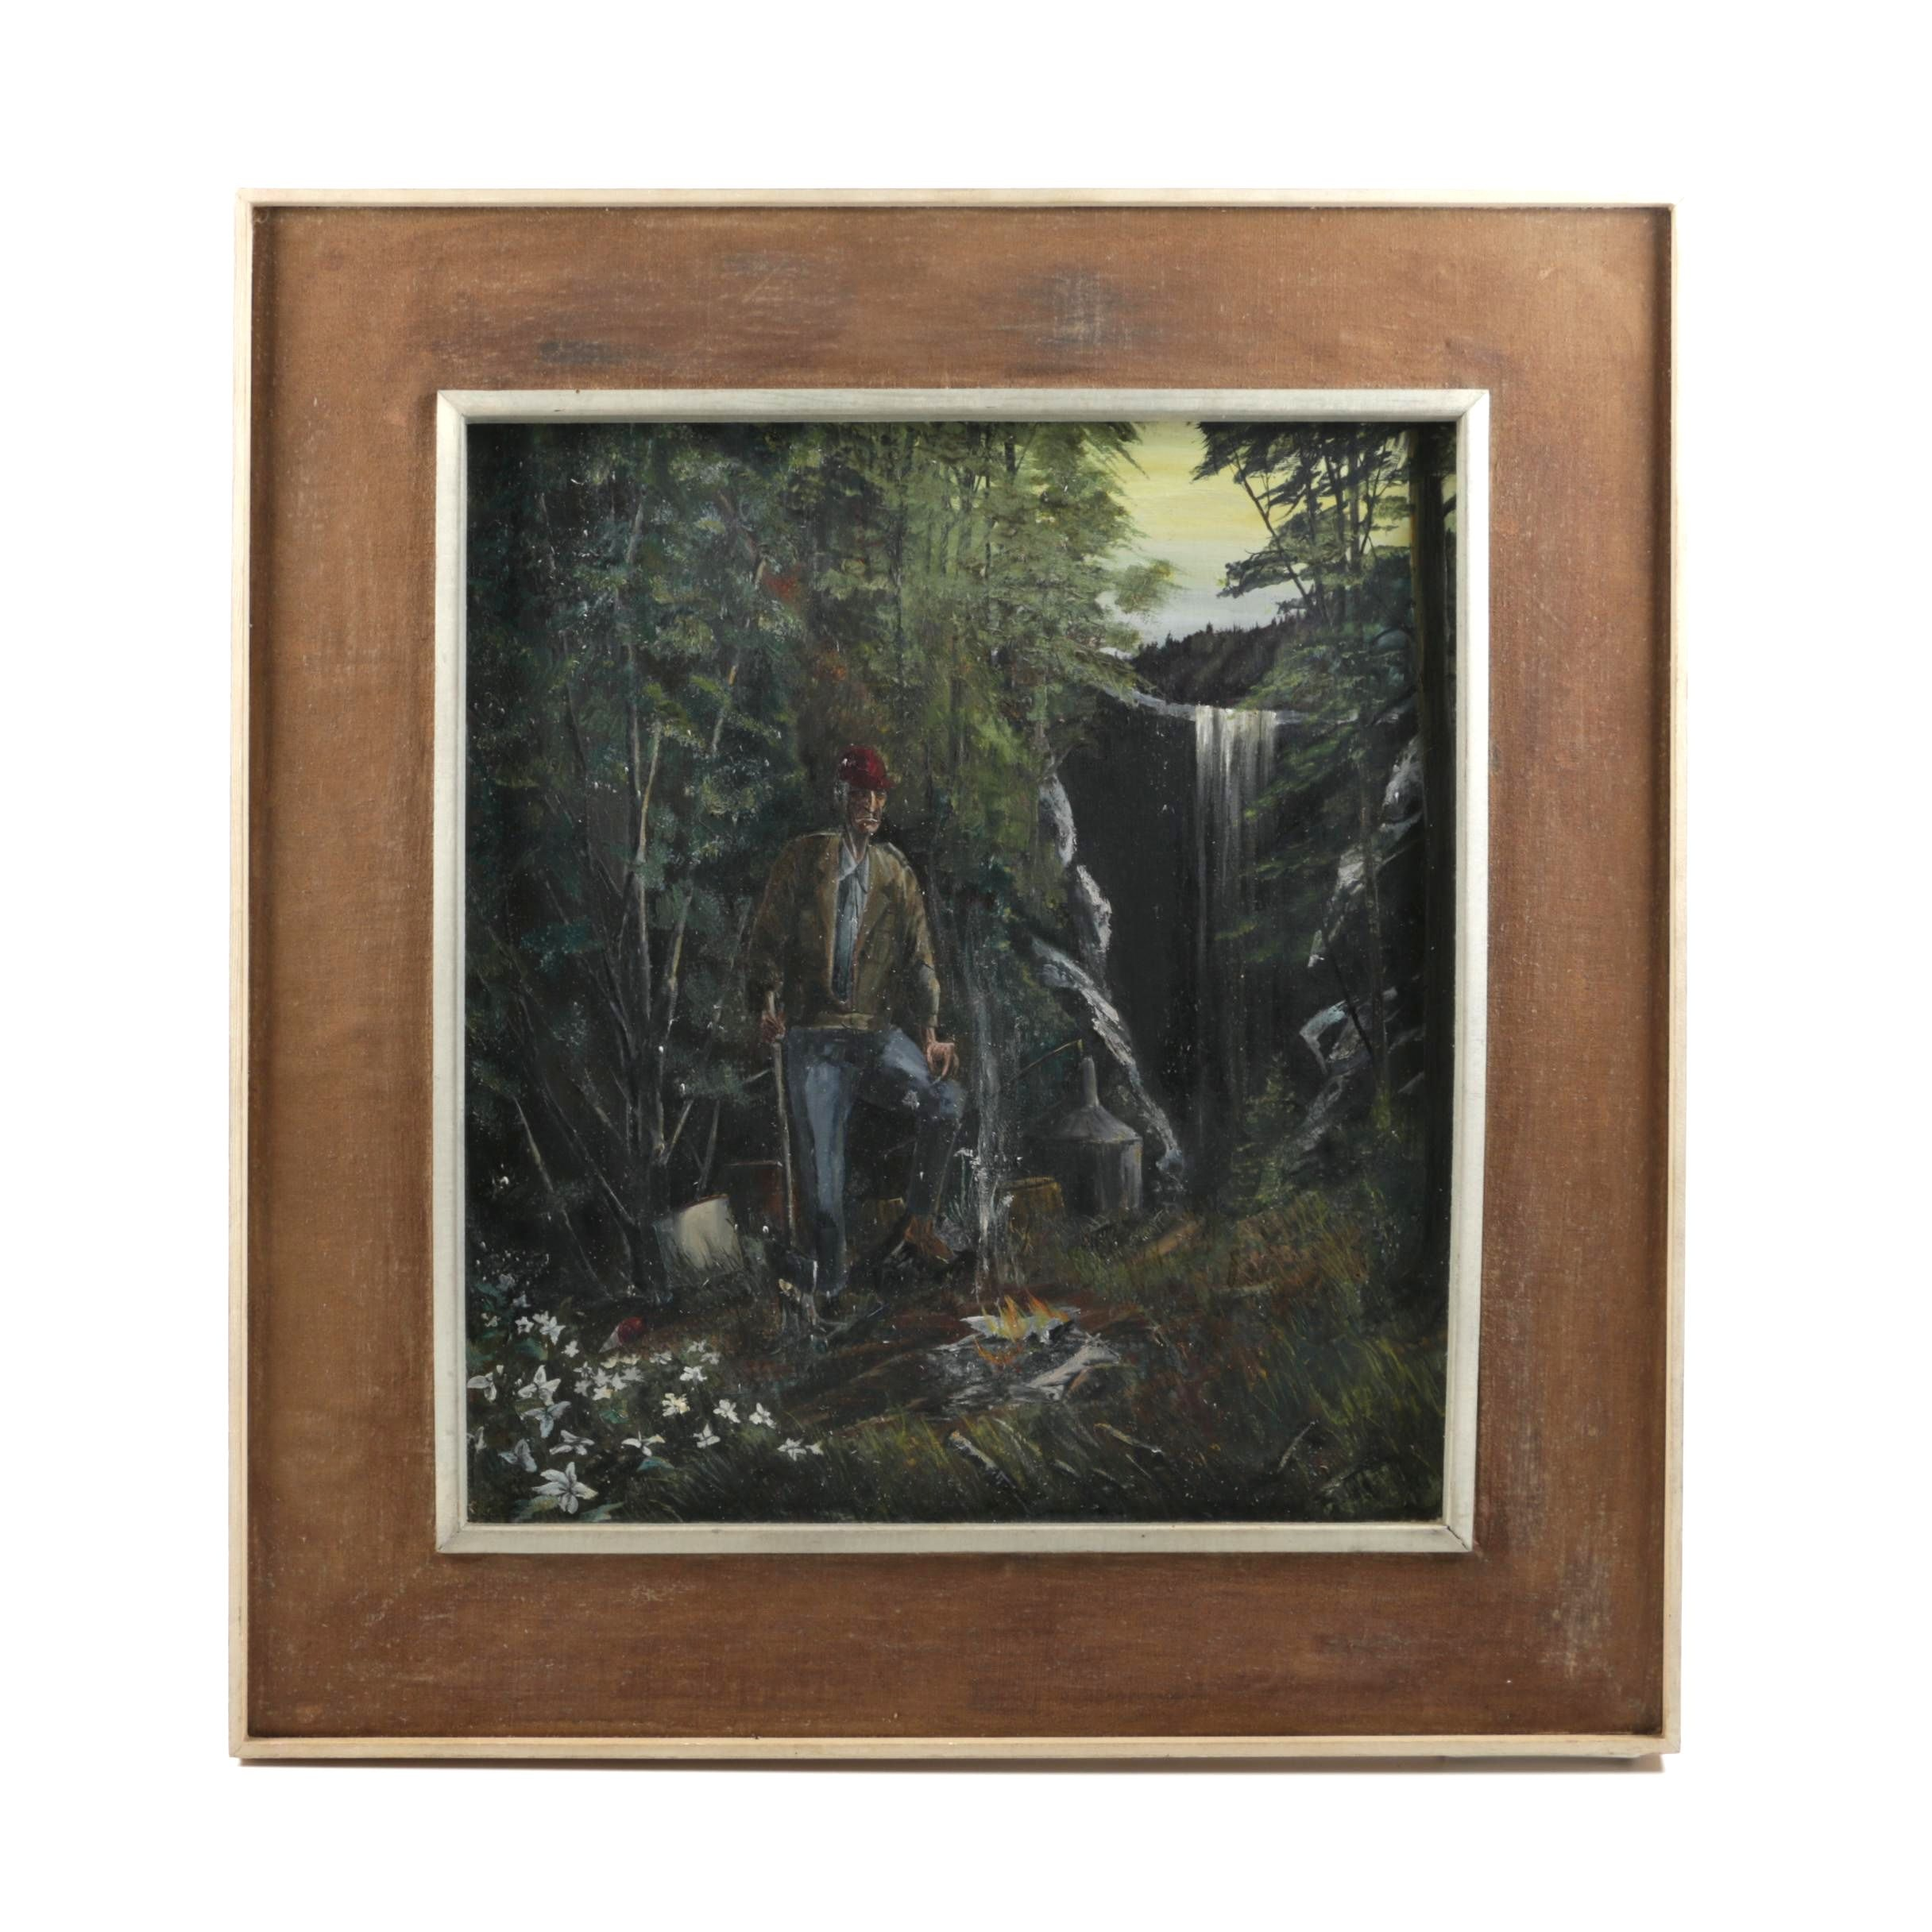 Oil Painting on Canvas of a Man Standing by a Campfire and Waterfall